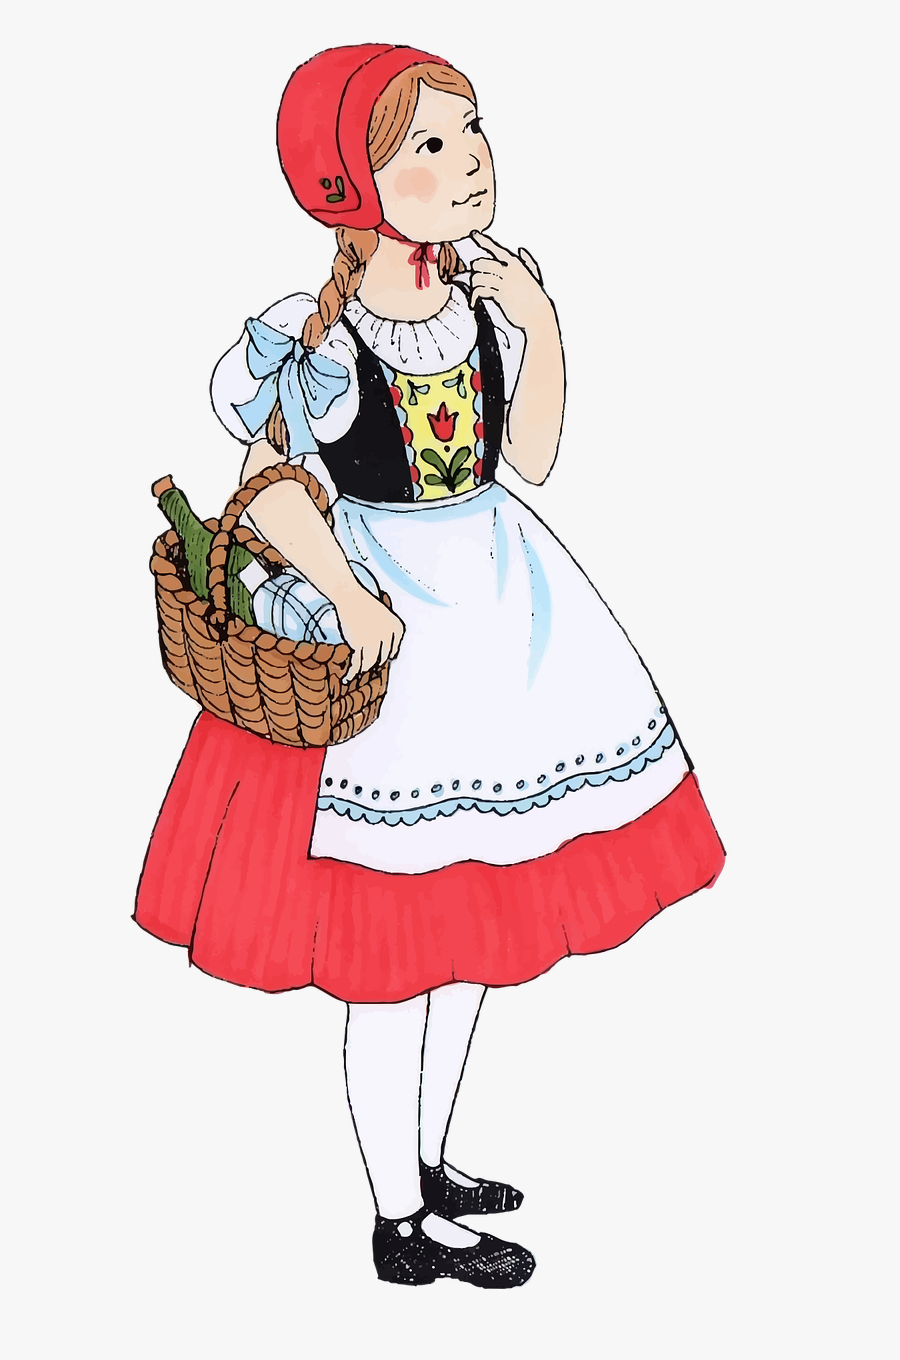 Children Famous Female Free Photo - Little Red Riding Hood Png, Transparent Clipart